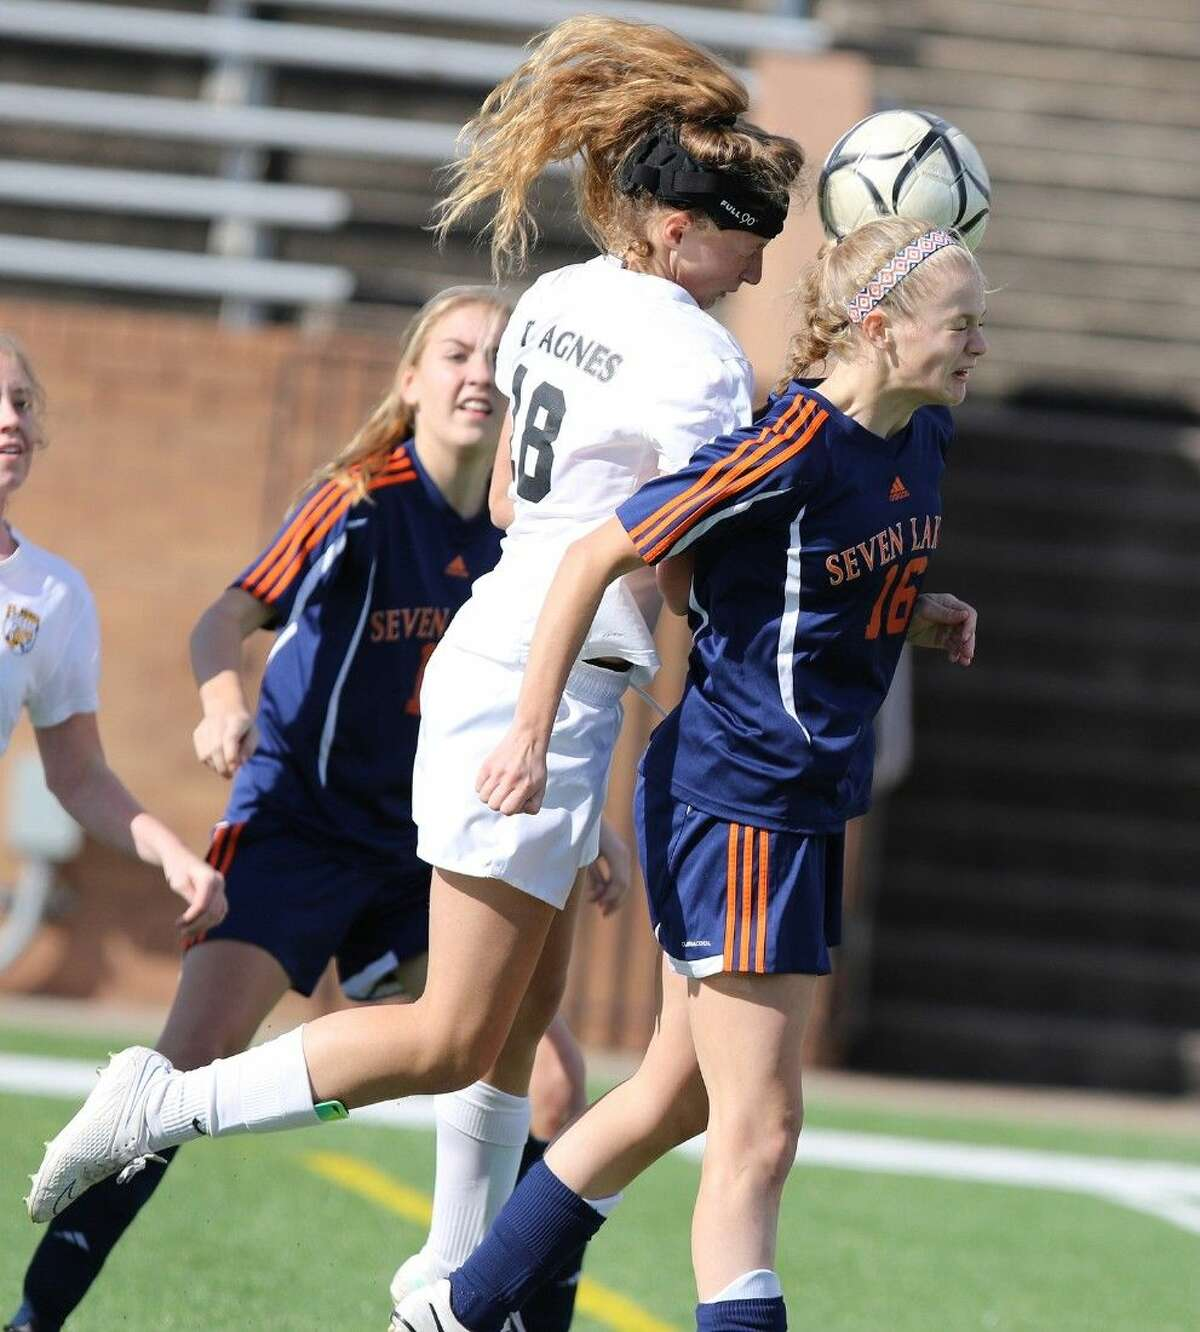 St. Agnes' Elyse Hanse and Seven Lakes' Morgan Proffitt go for a header during the Katy I-10 Shootout, Spartan Bracket Final on Jan. 17 in Katy. To view or purchase this photo and others like it, go to HCNPics.com.